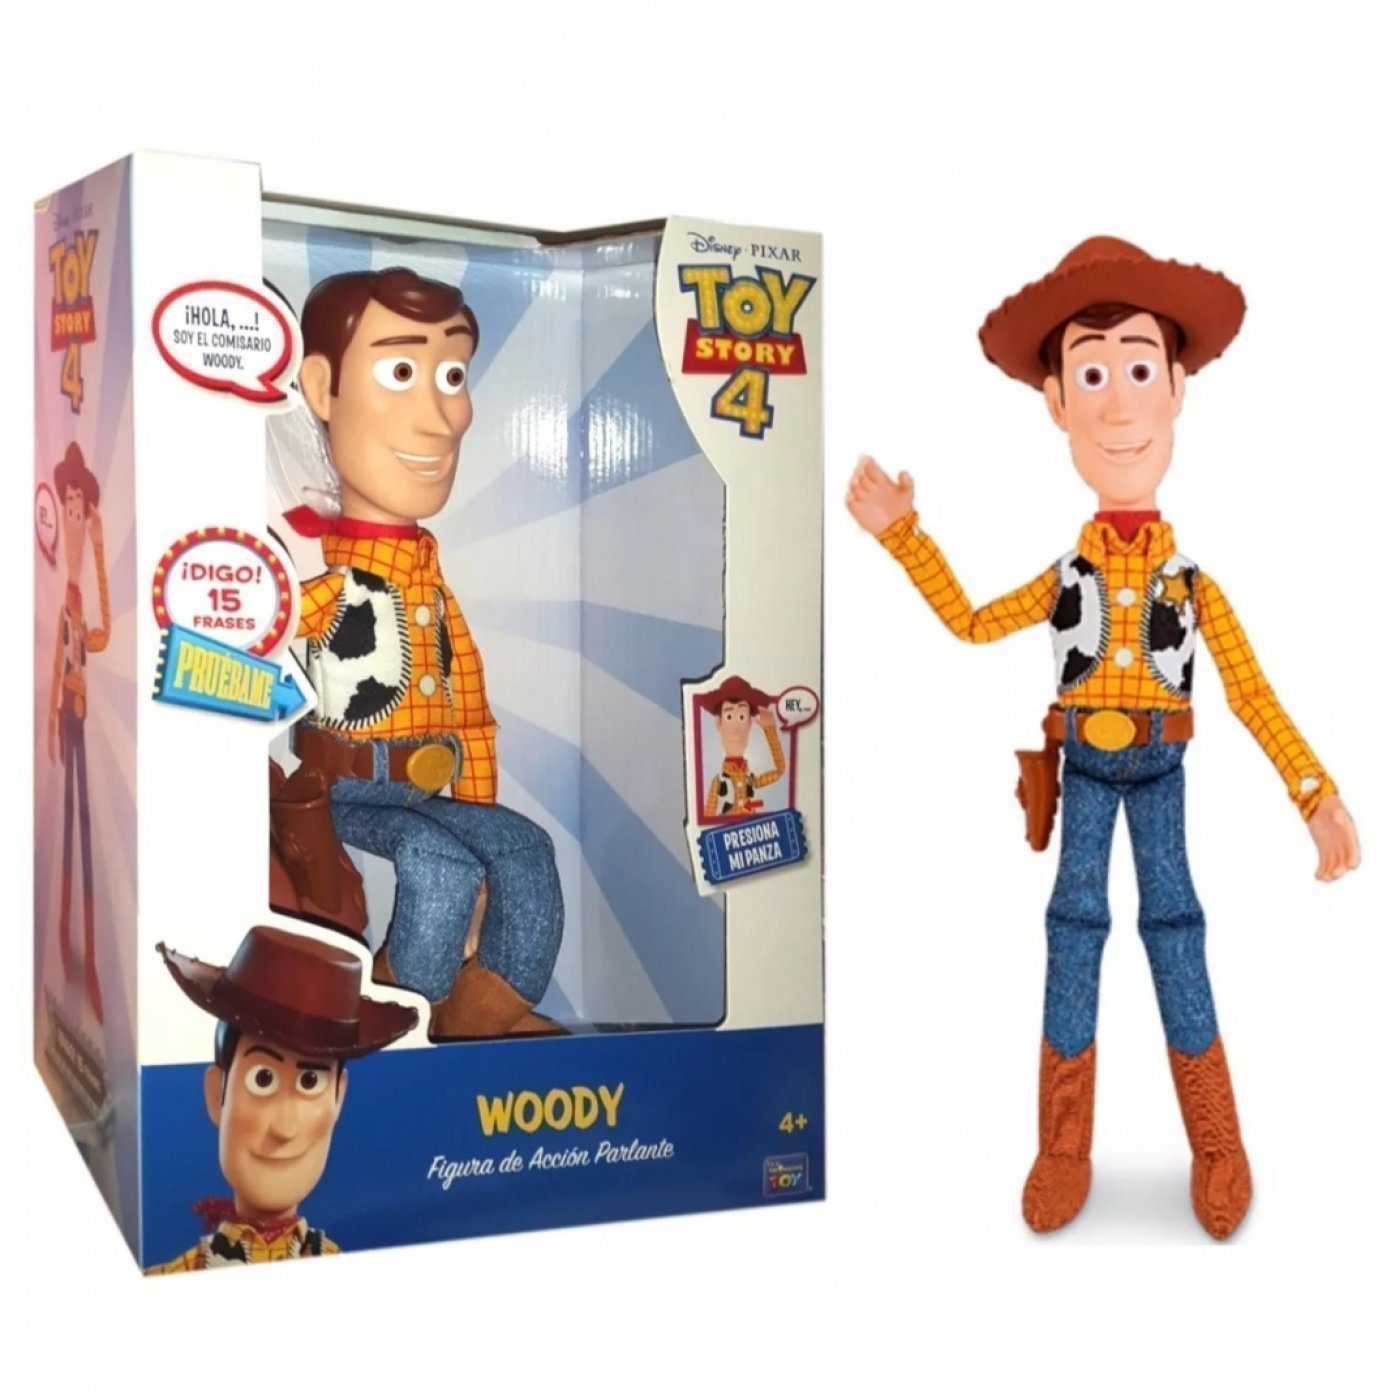 Woody ( 15 Frases) Toy Story 4